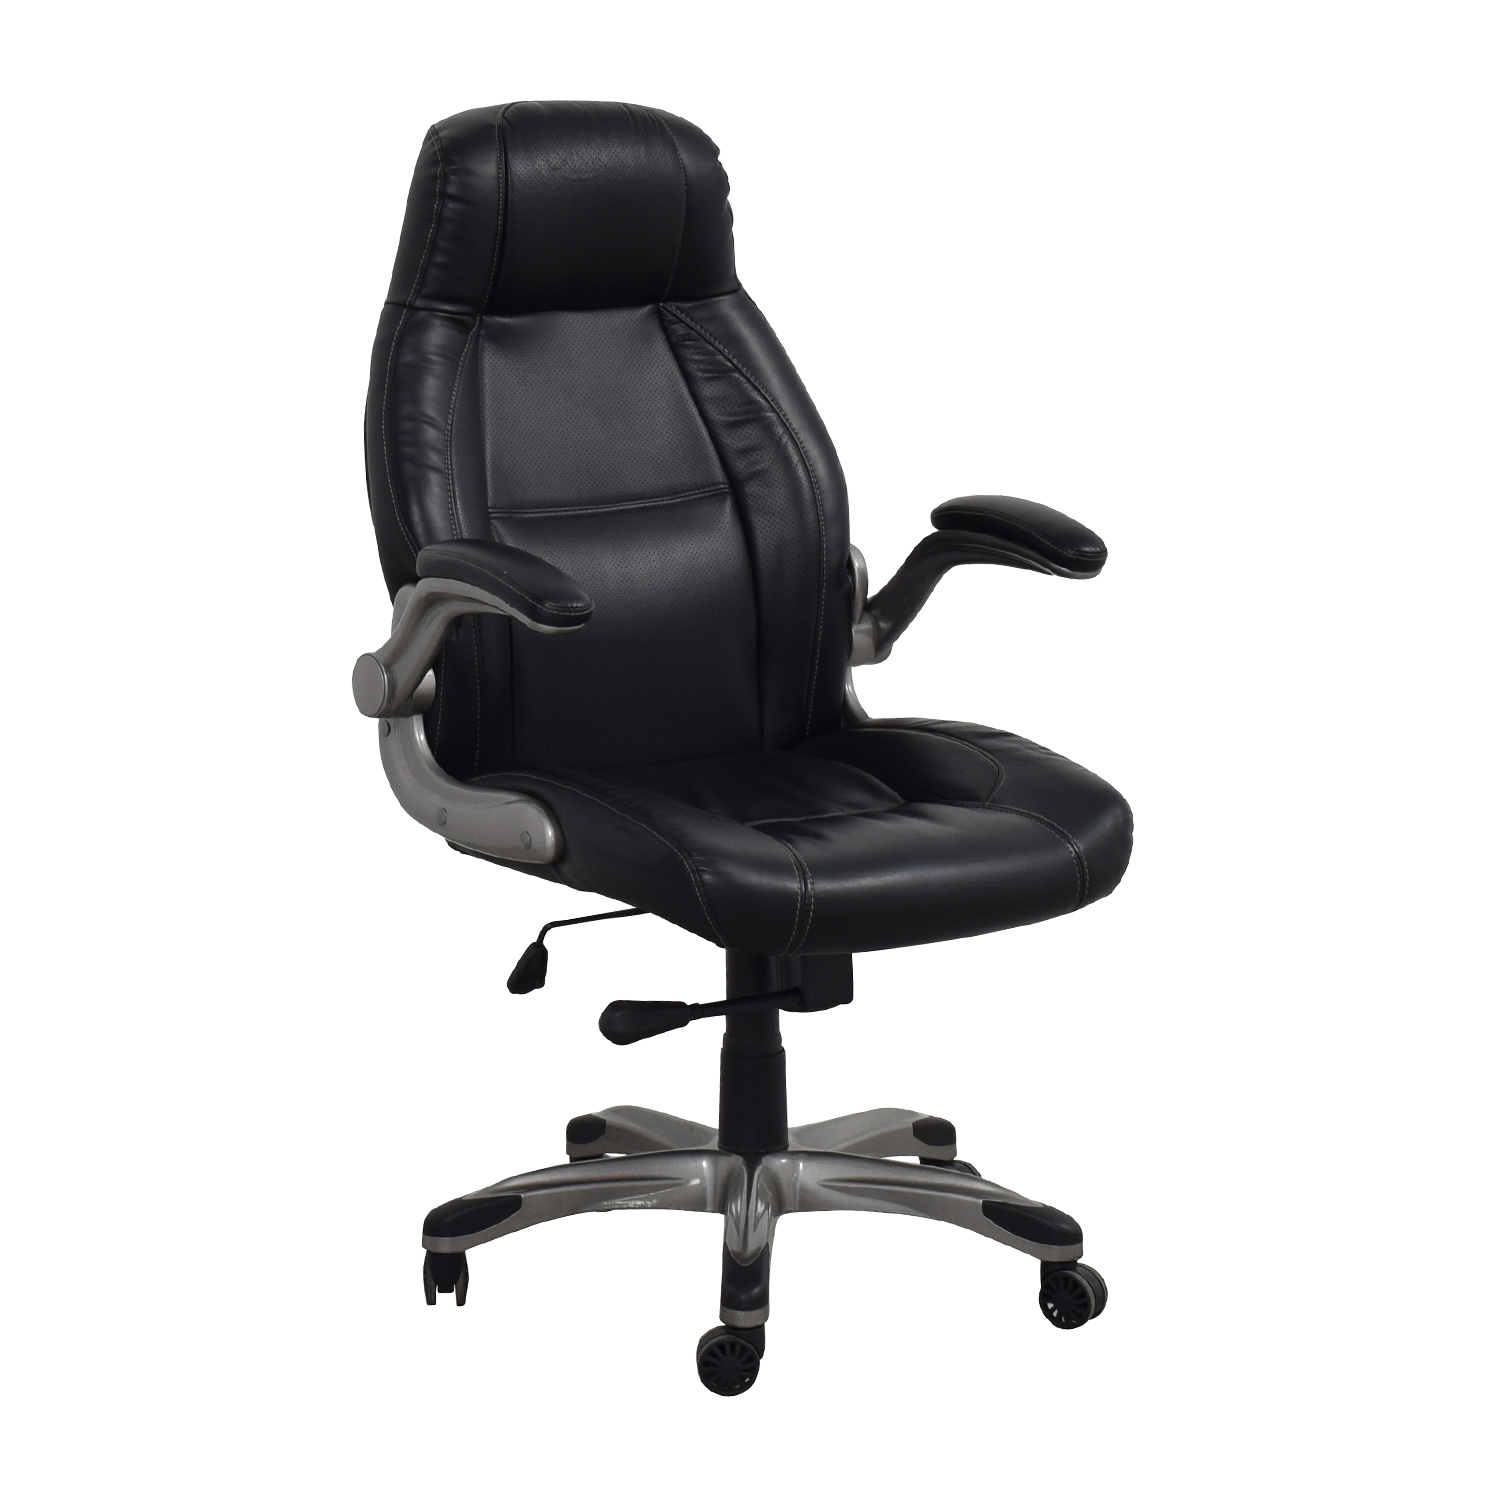 staples chair executive lumbar plan reclining pertaining no office chairs wide support awesome furniture of mesh desk to astonishing ergonomic with arms too